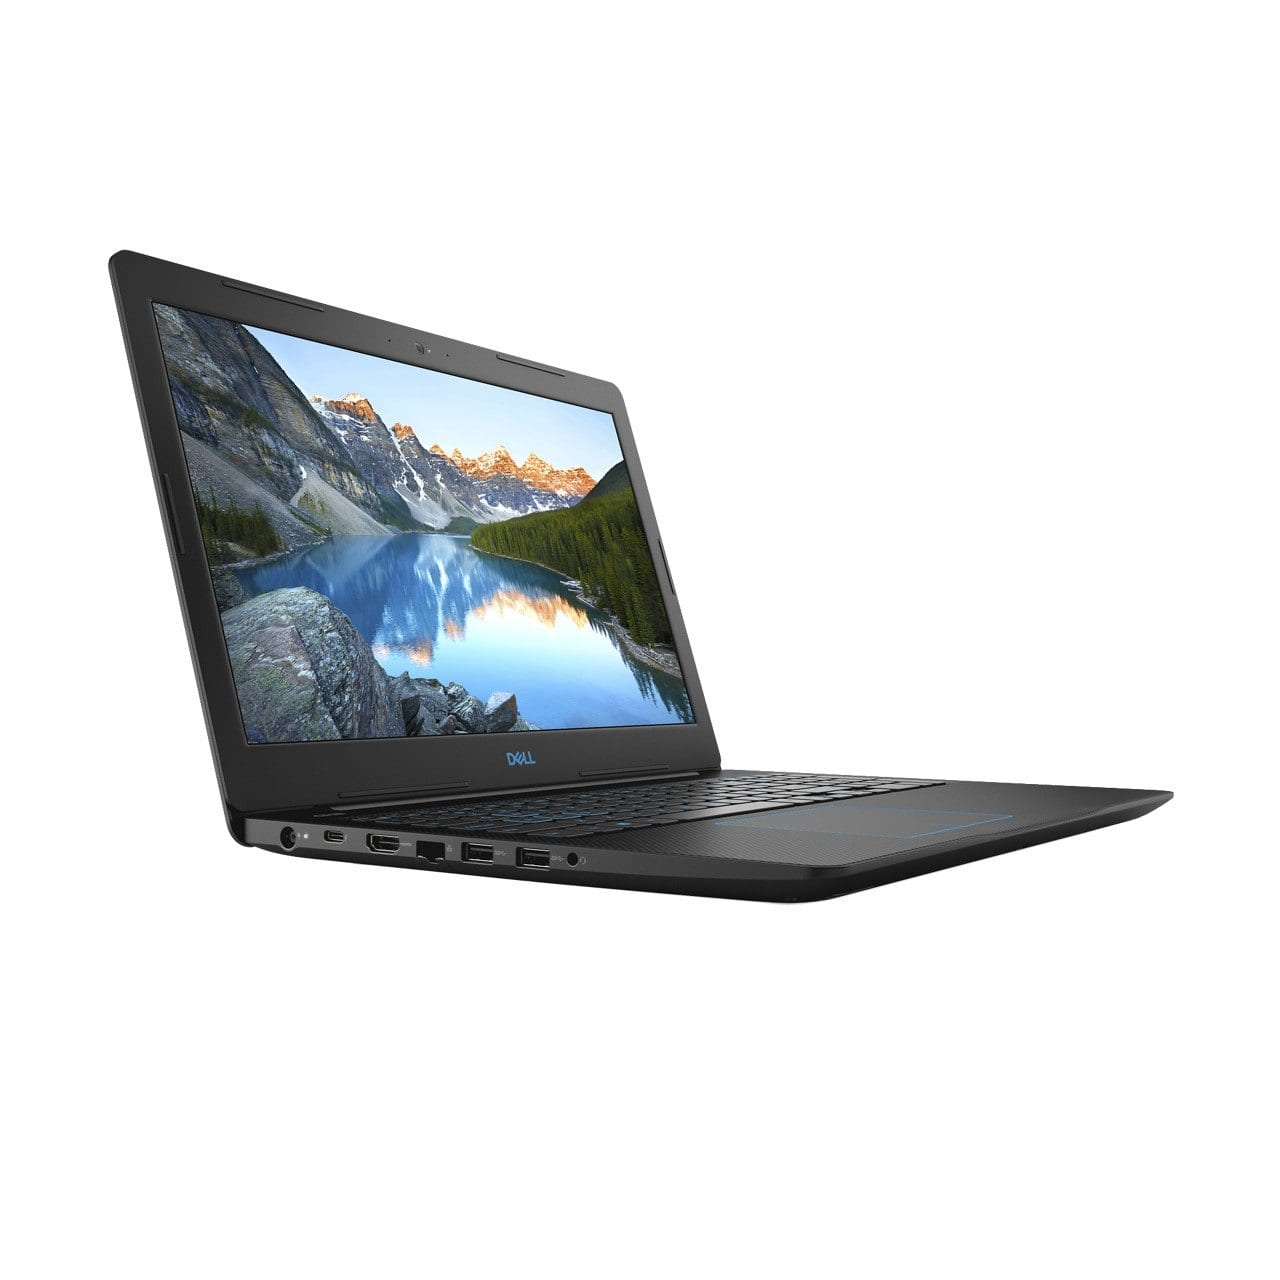 "Dell G-Series 15 3579 Gaming Laptop 15.6"" i5 GTX 1050 Ti 256GB SSD 8GB $630, Dell Inspiron 5676 Gaming Desktop Ryzen 7 2700X Radeon RX 580 256GB SSD+1TB HDD 16GB RAM $850 + FS"